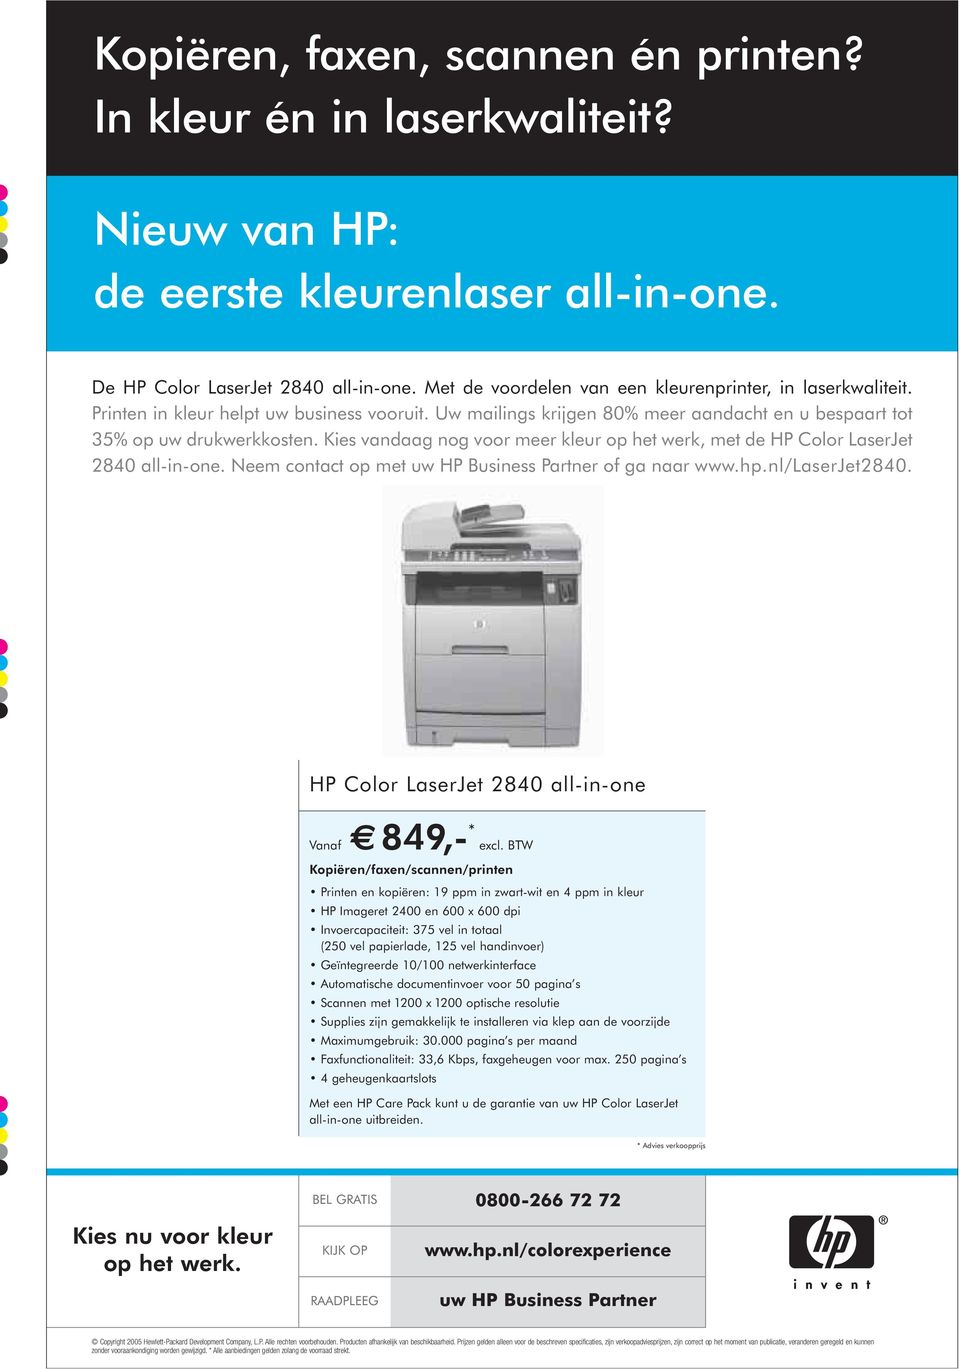 Kies vandaag nog voor meer kleur op het werk, met de HP Color LaserJet 2840 all-in-one. Neem contact op met uw HP Business Partner of ga naar www.hp.nl/laserjet2840.